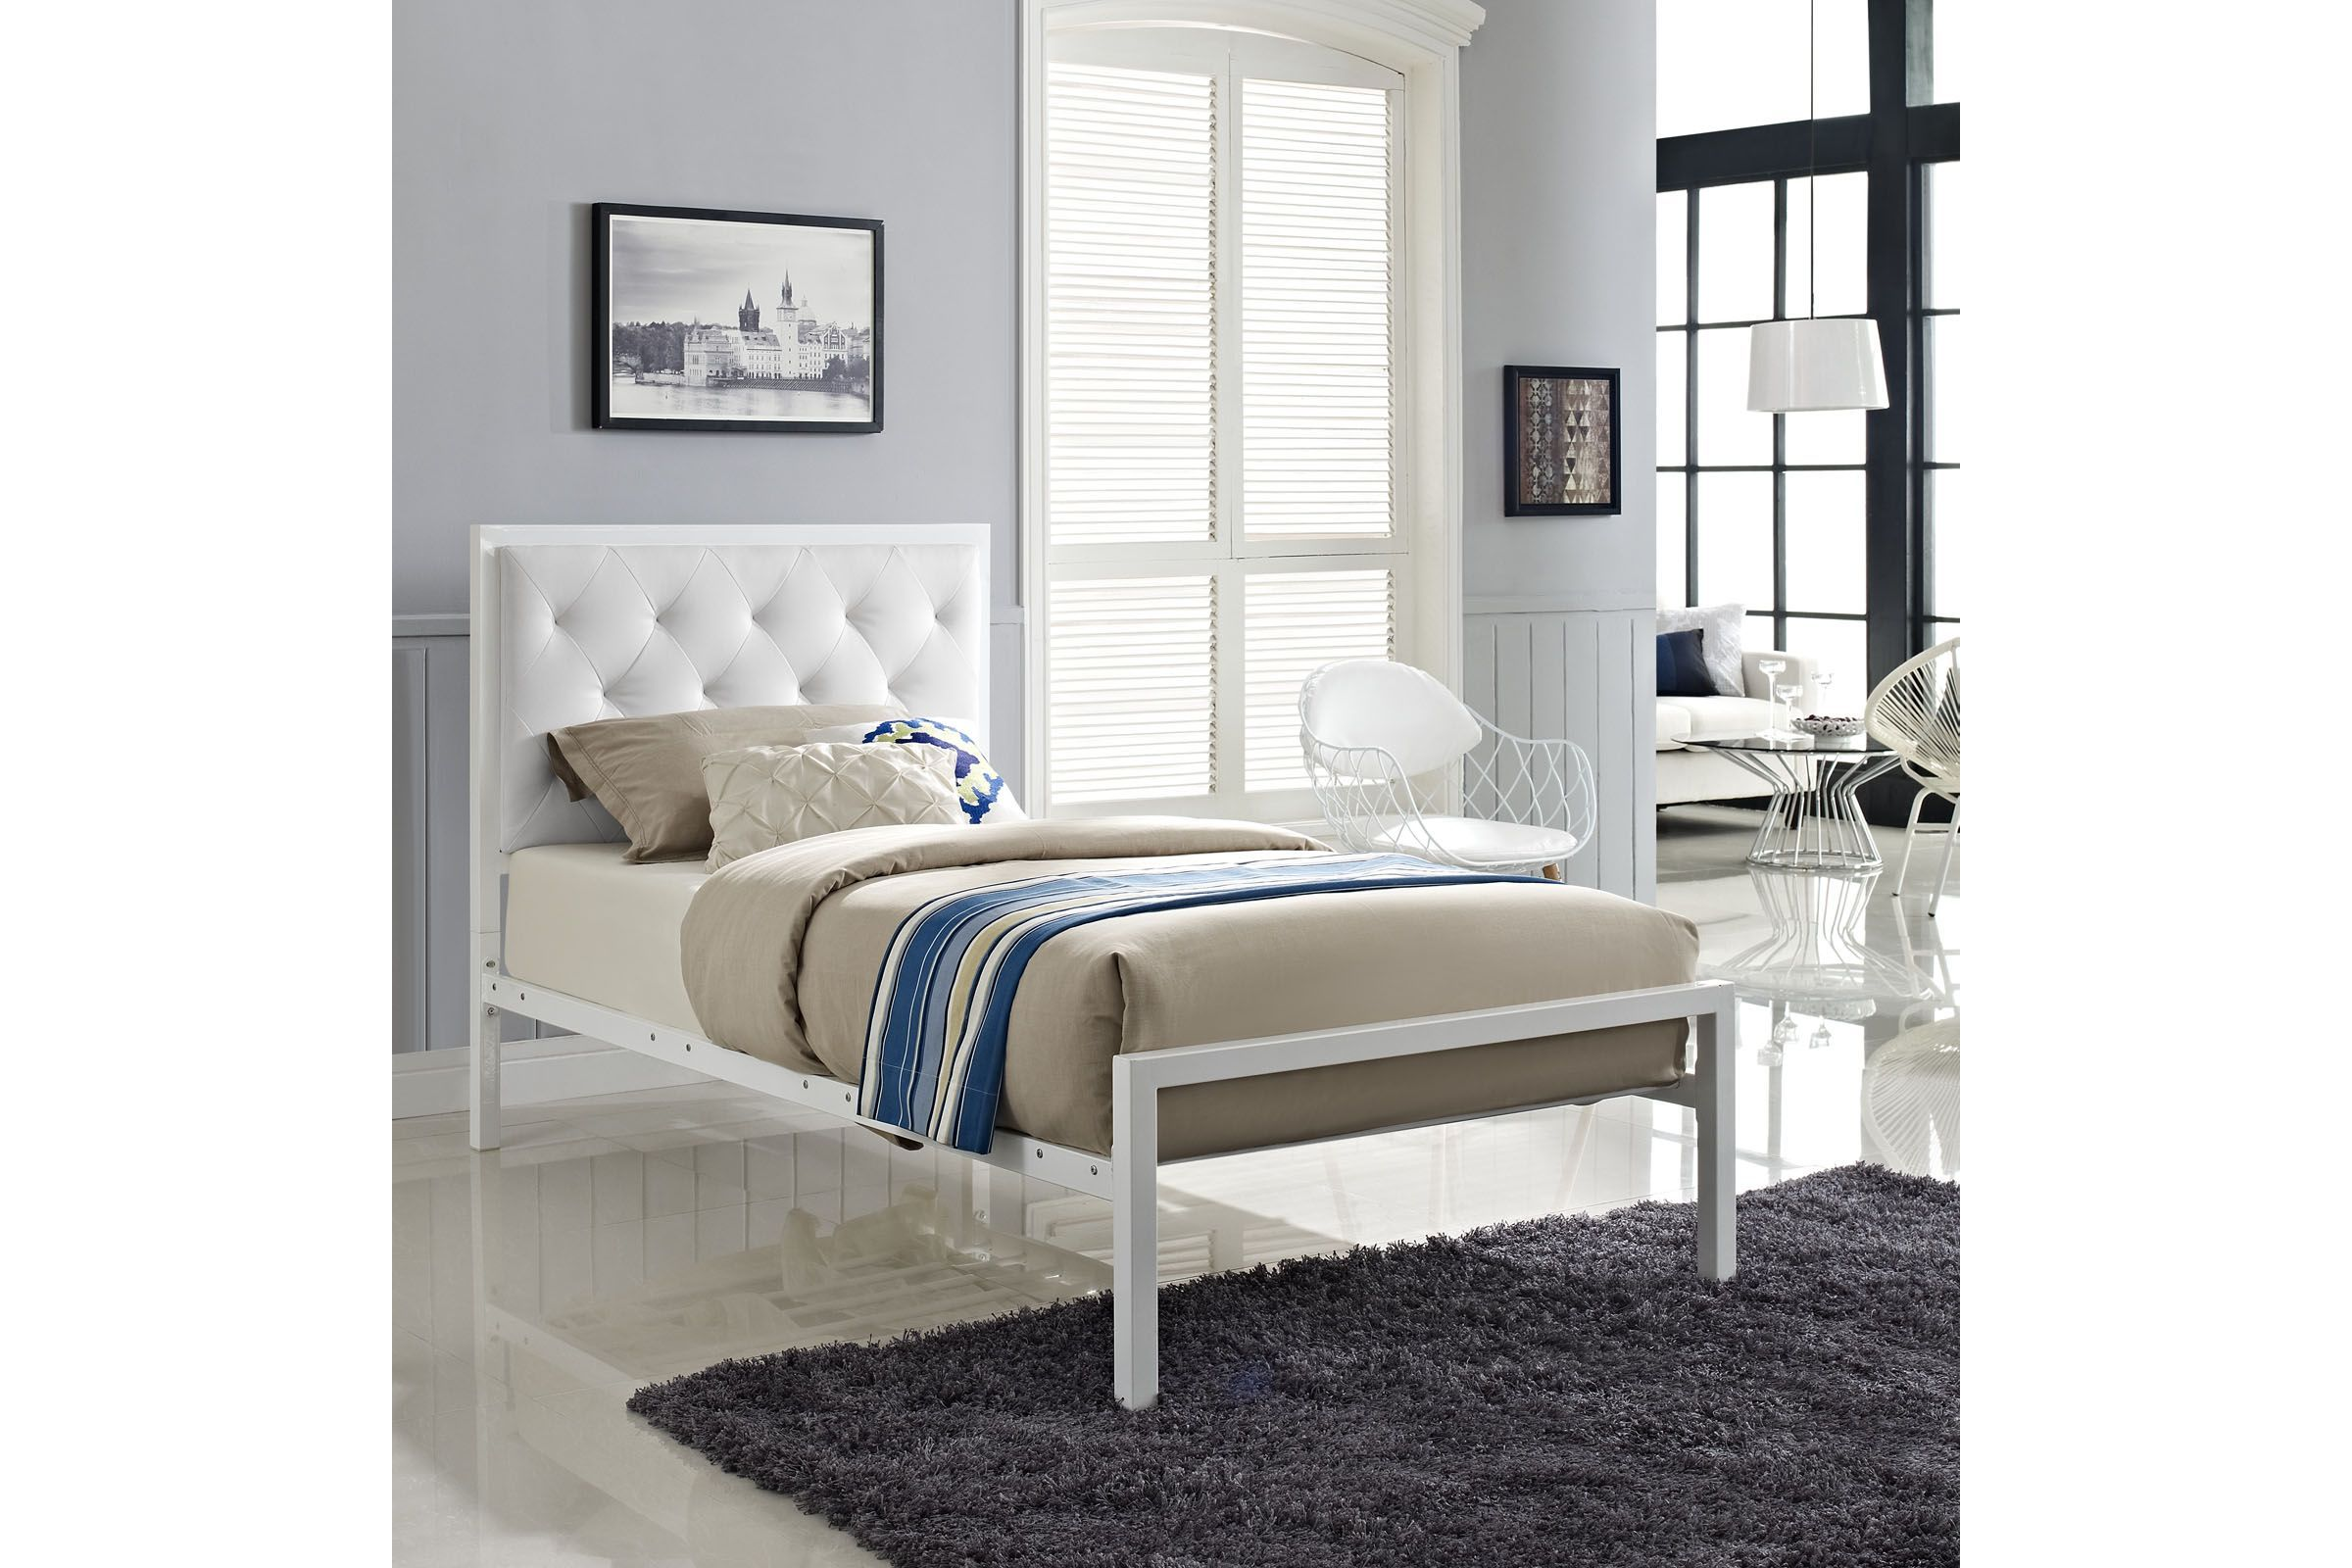 Mia Twin Vinyl Bed By Modway Bed Frame Headboard Bedroom